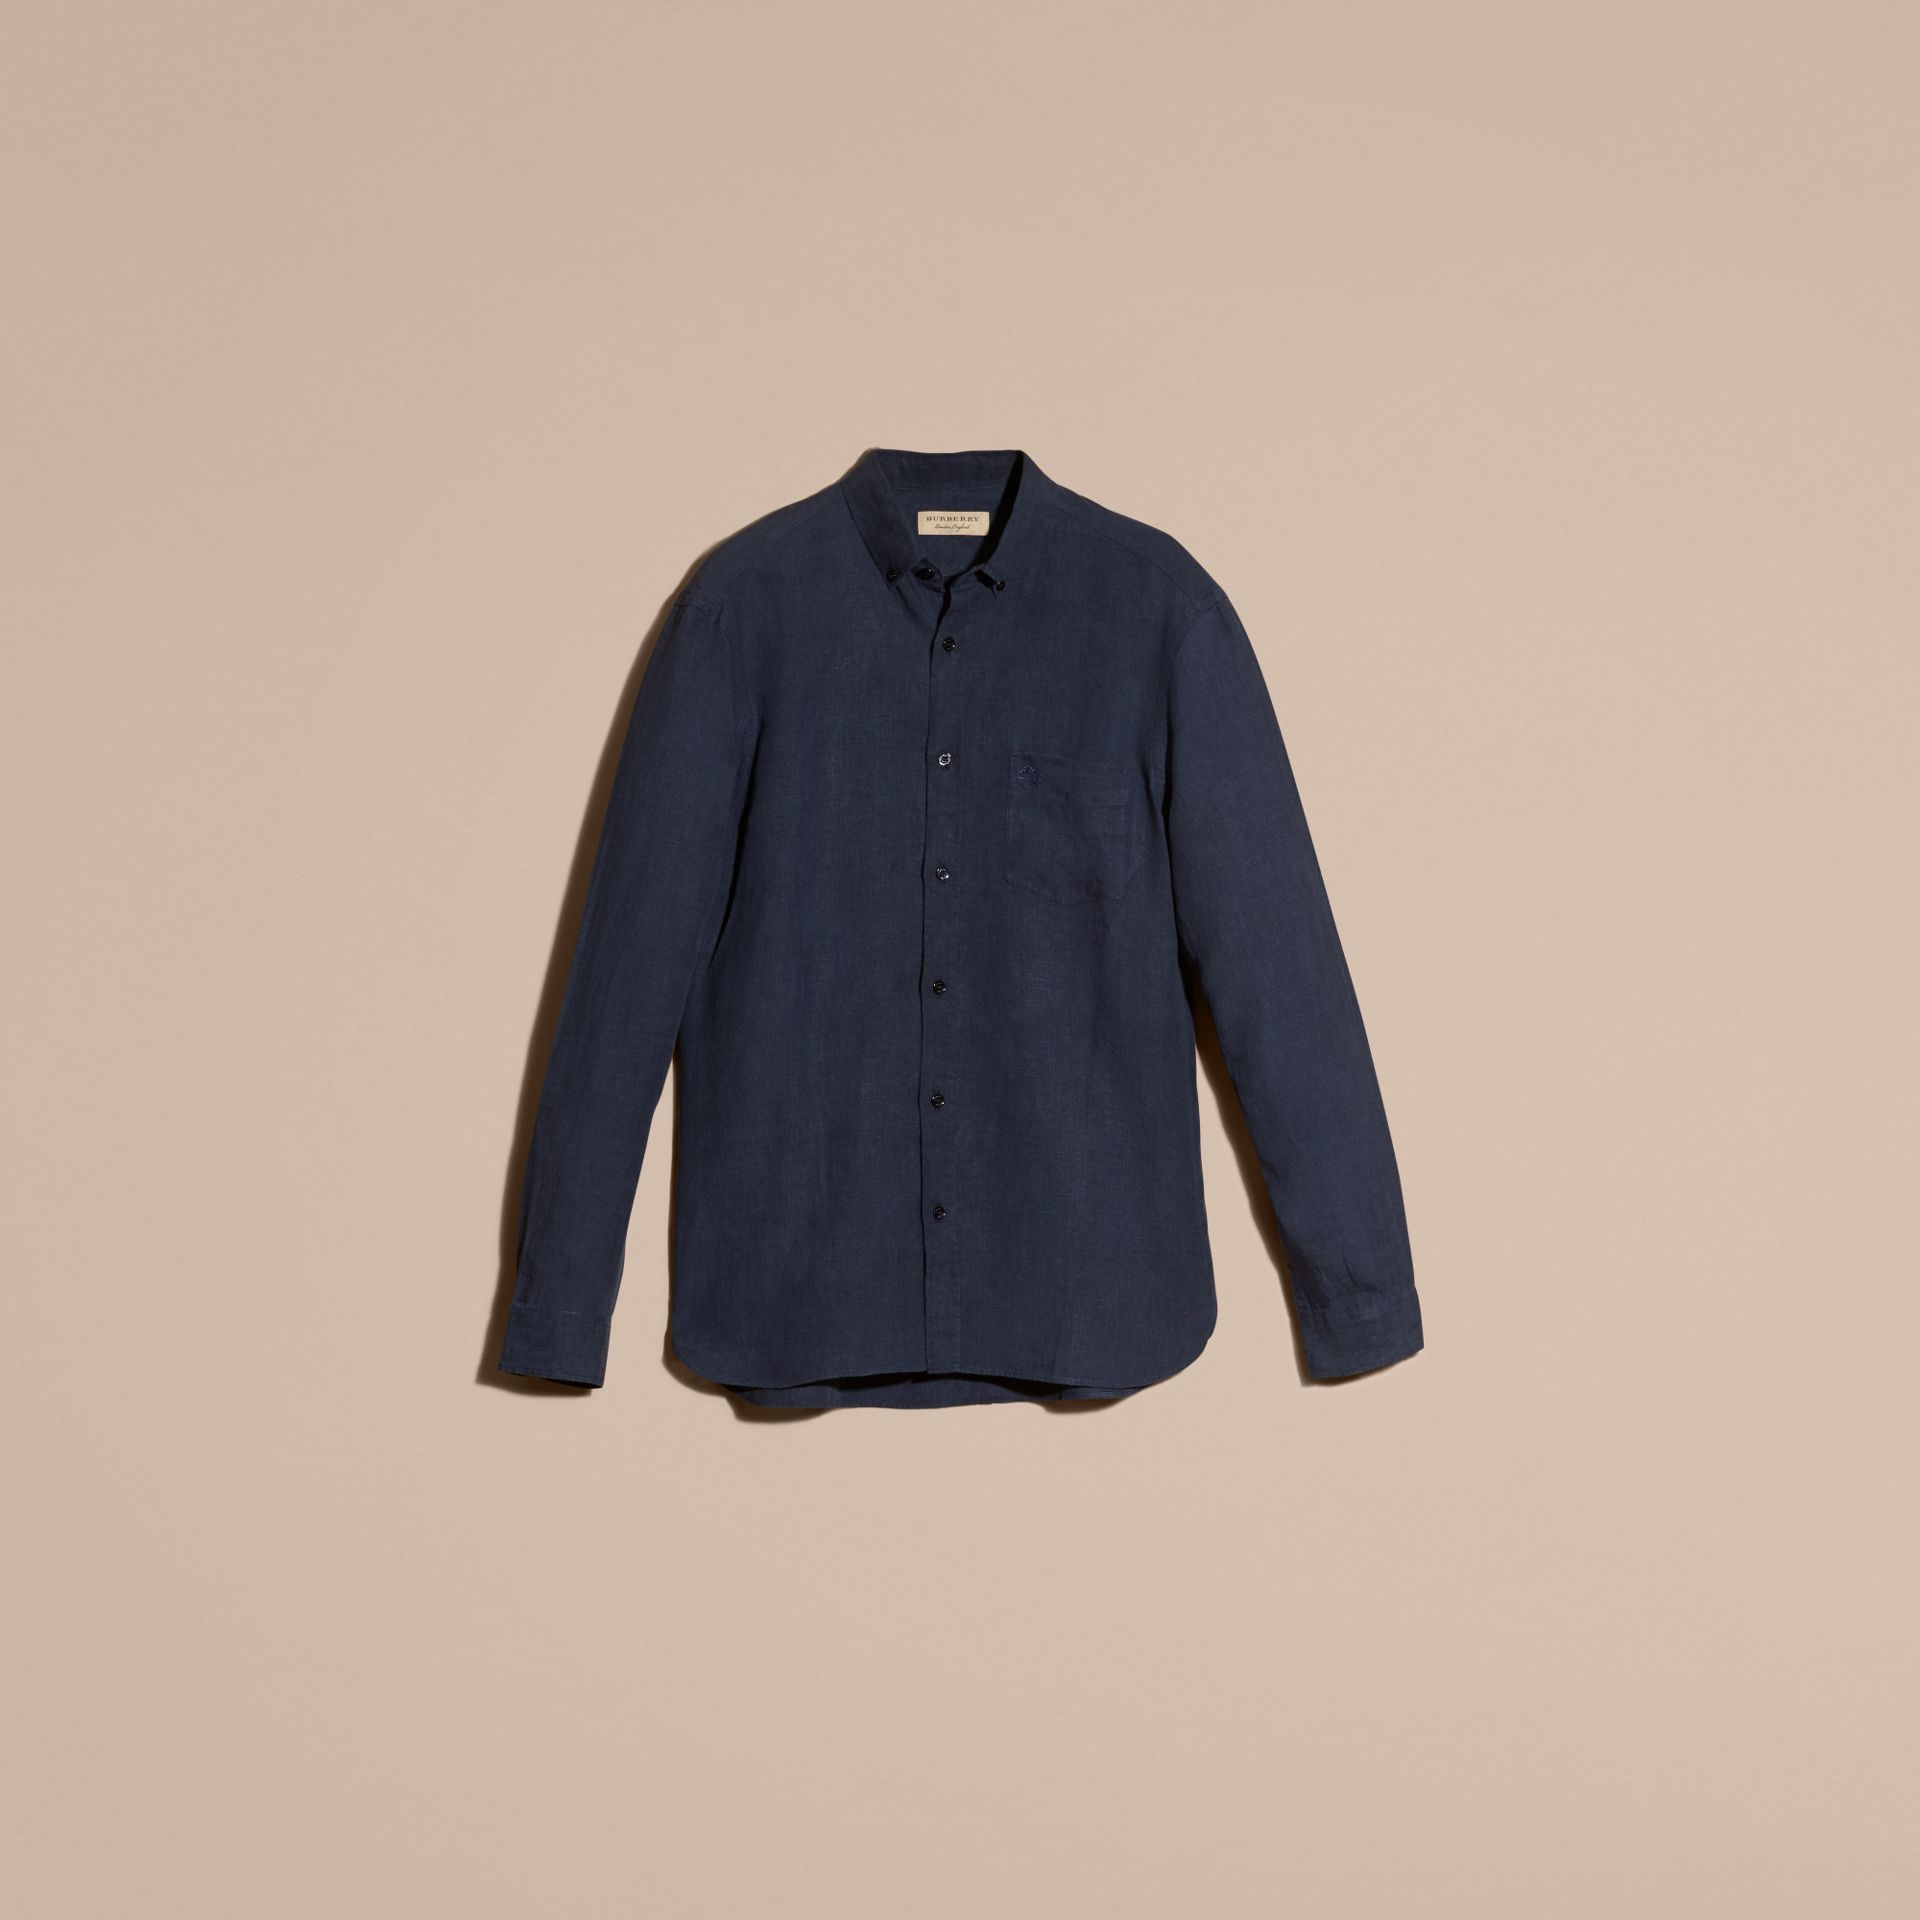 Navy Camicia in lino con colletto button-down Navy - immagine della galleria 3